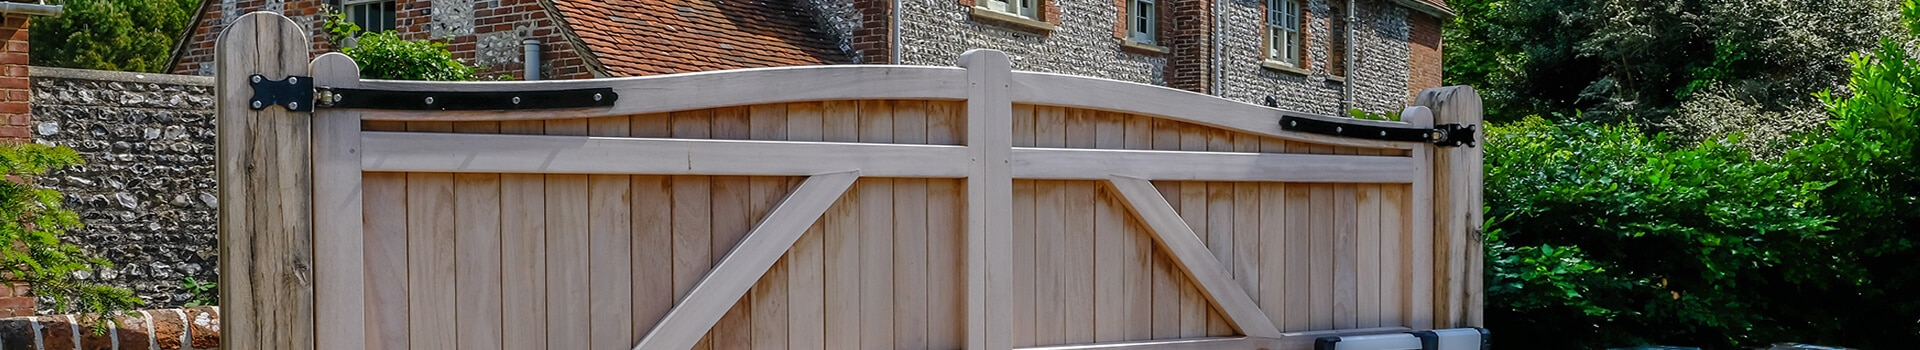 Automatic Gate Fence Type